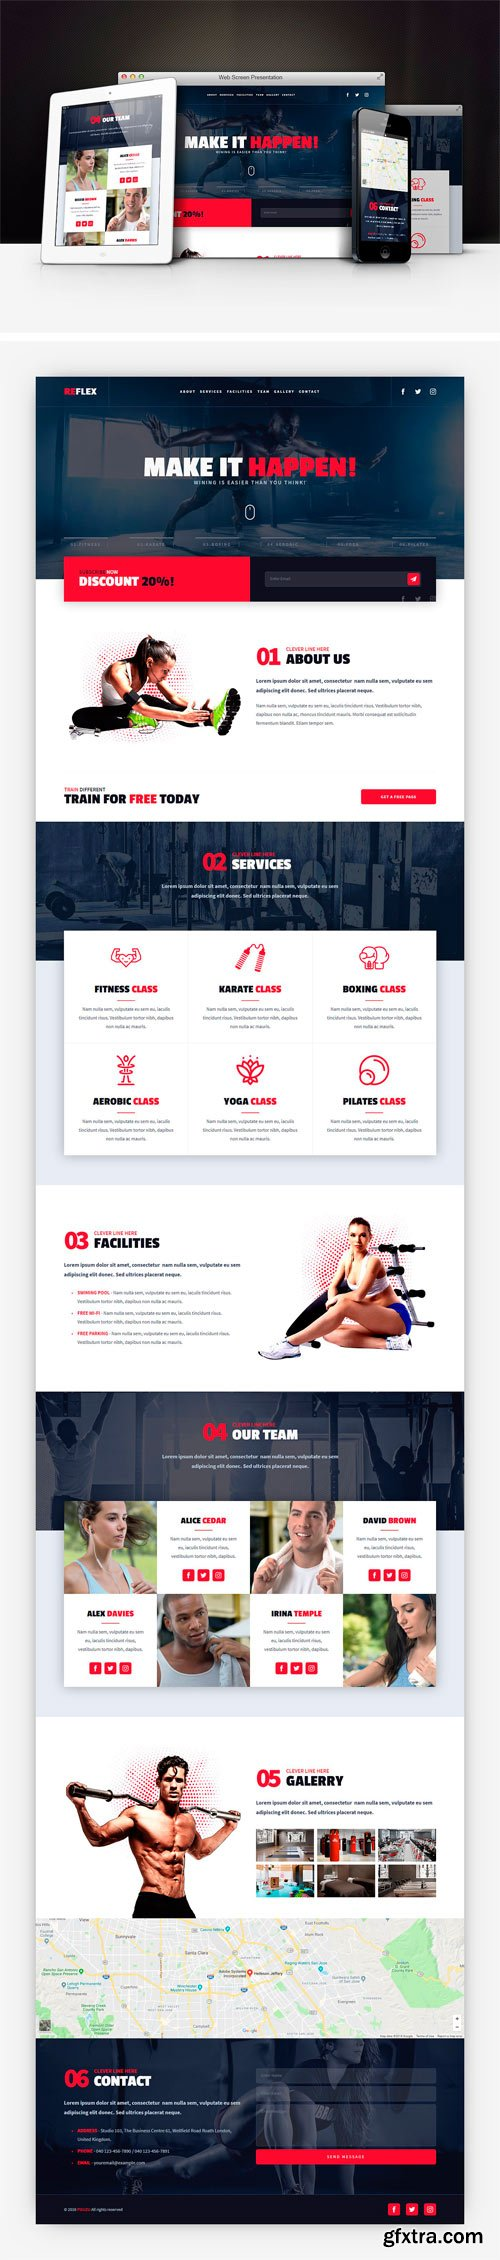 CM - Reflex - Fitness Gym Muse Template 2350855